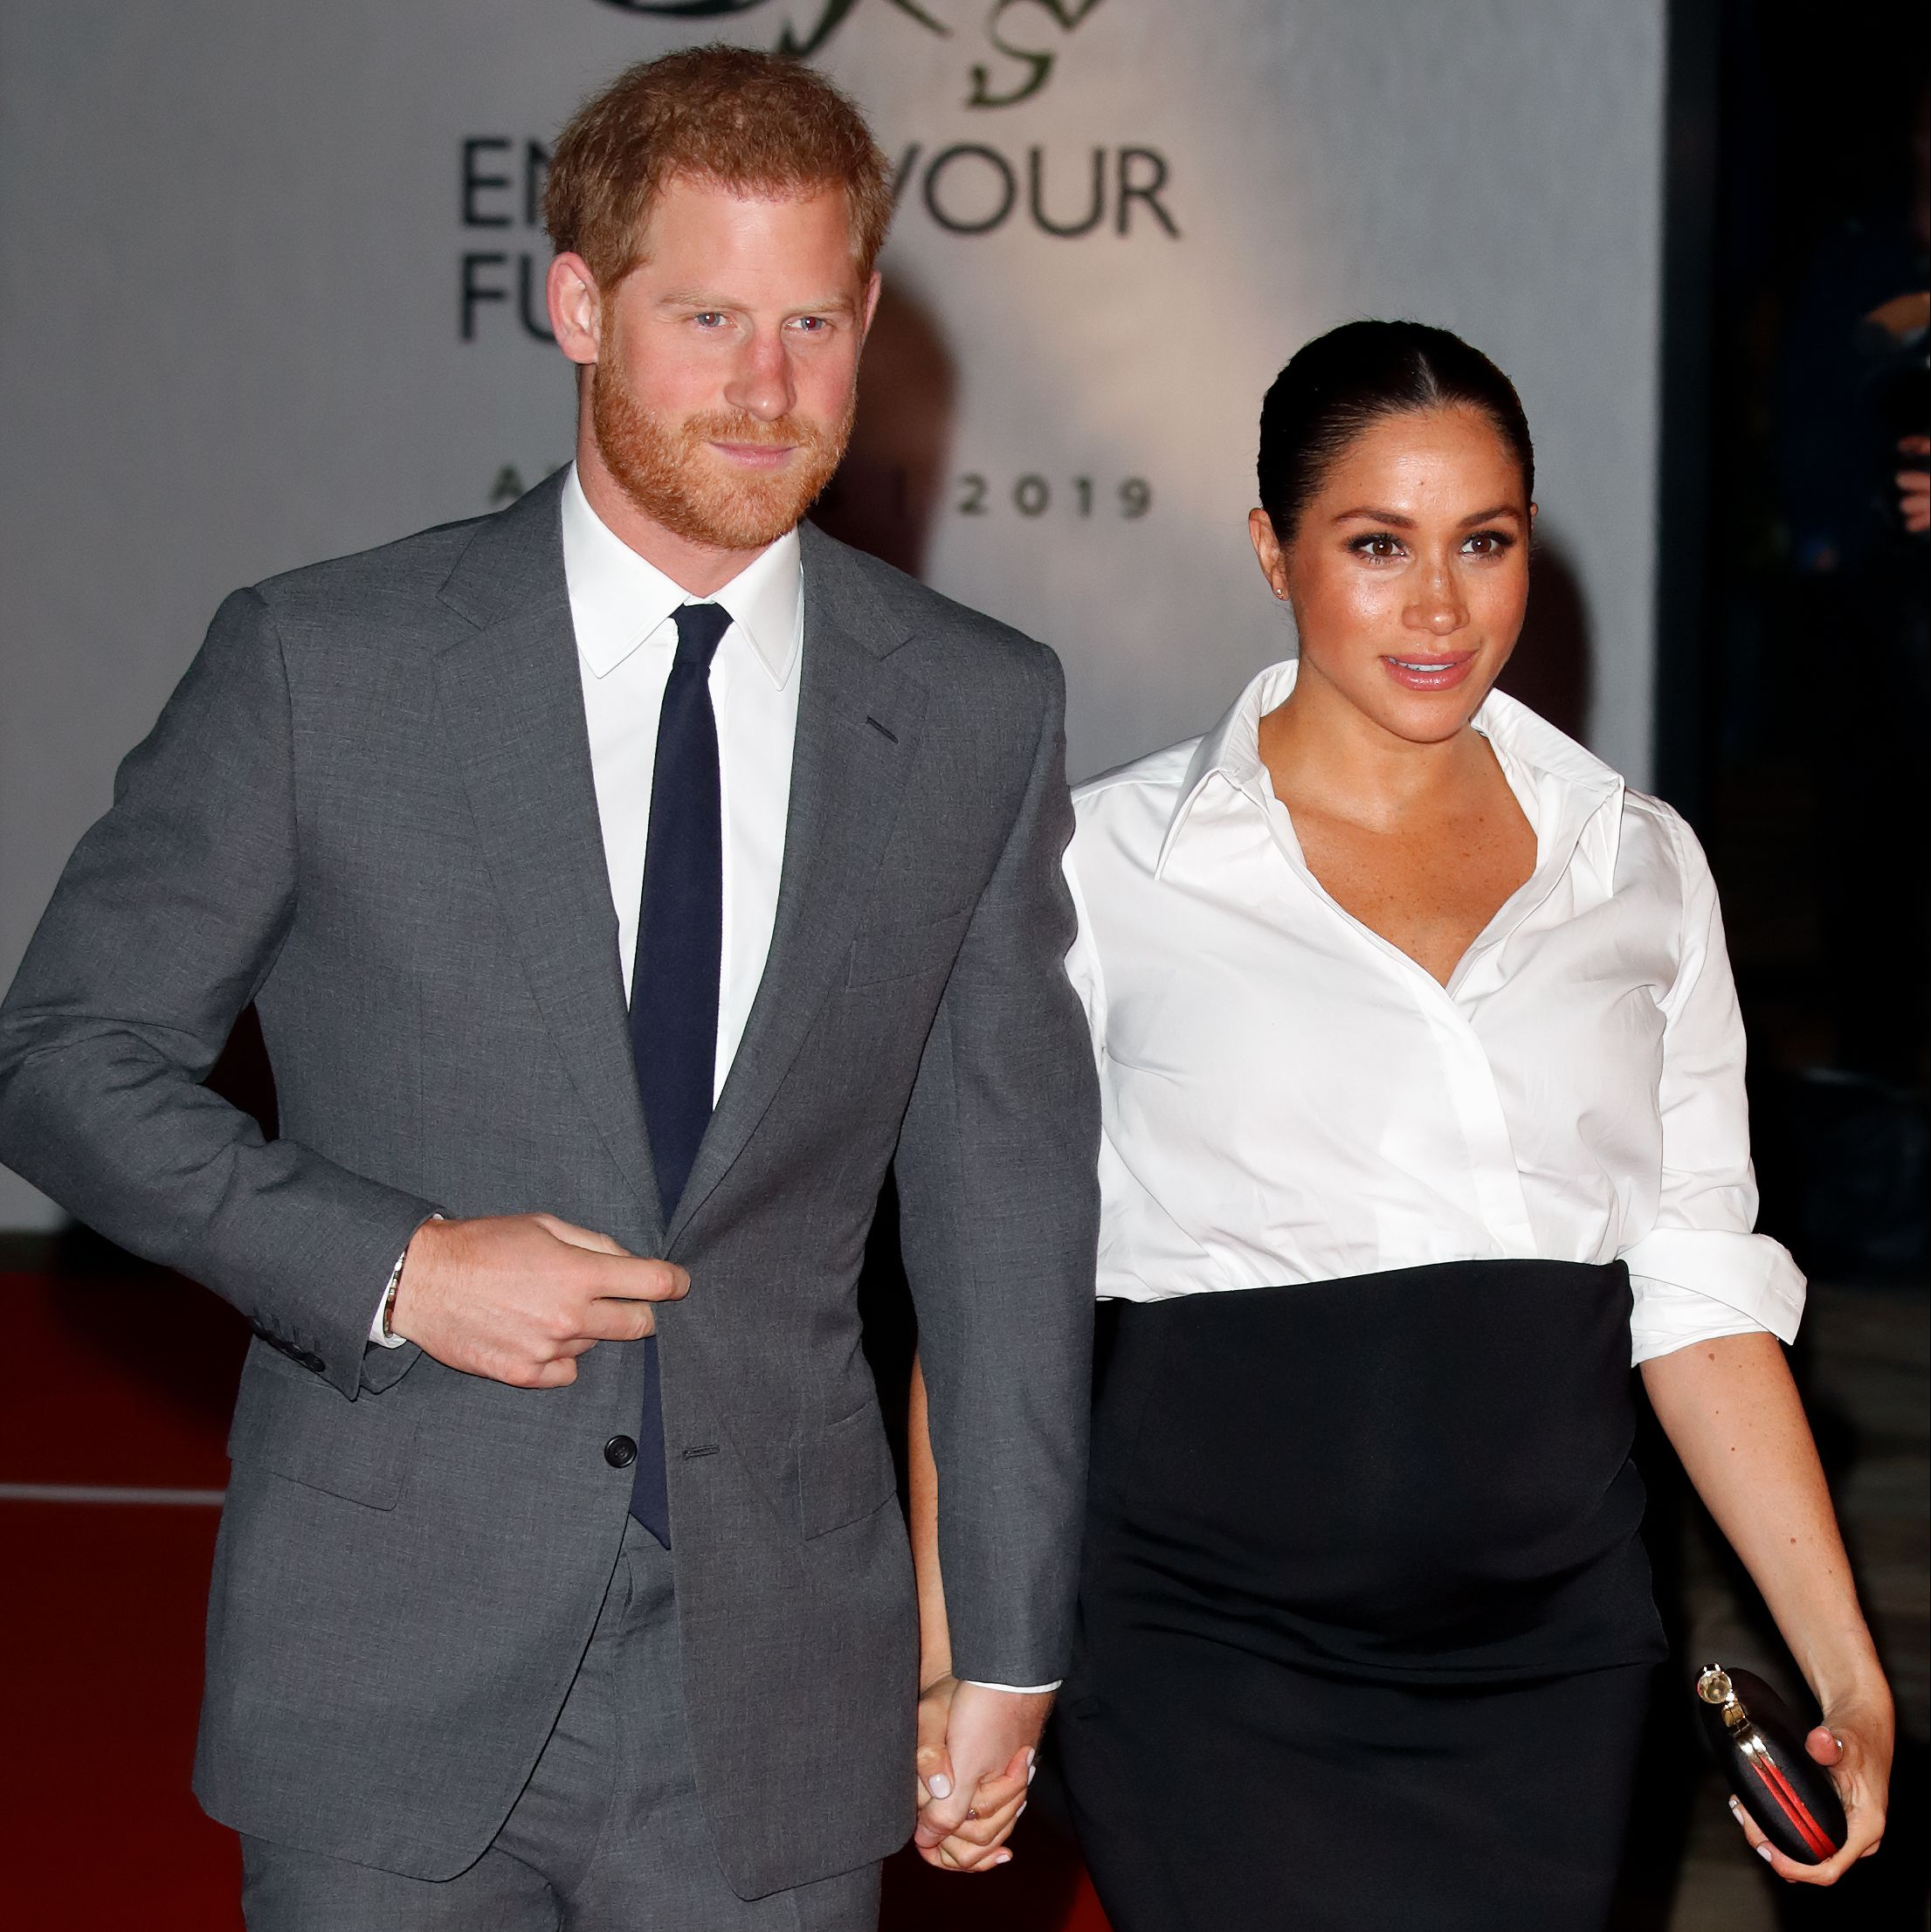 Important Question: Where Will Meghan Markle and Prince Harry's Baby Be in Line to the Throne?